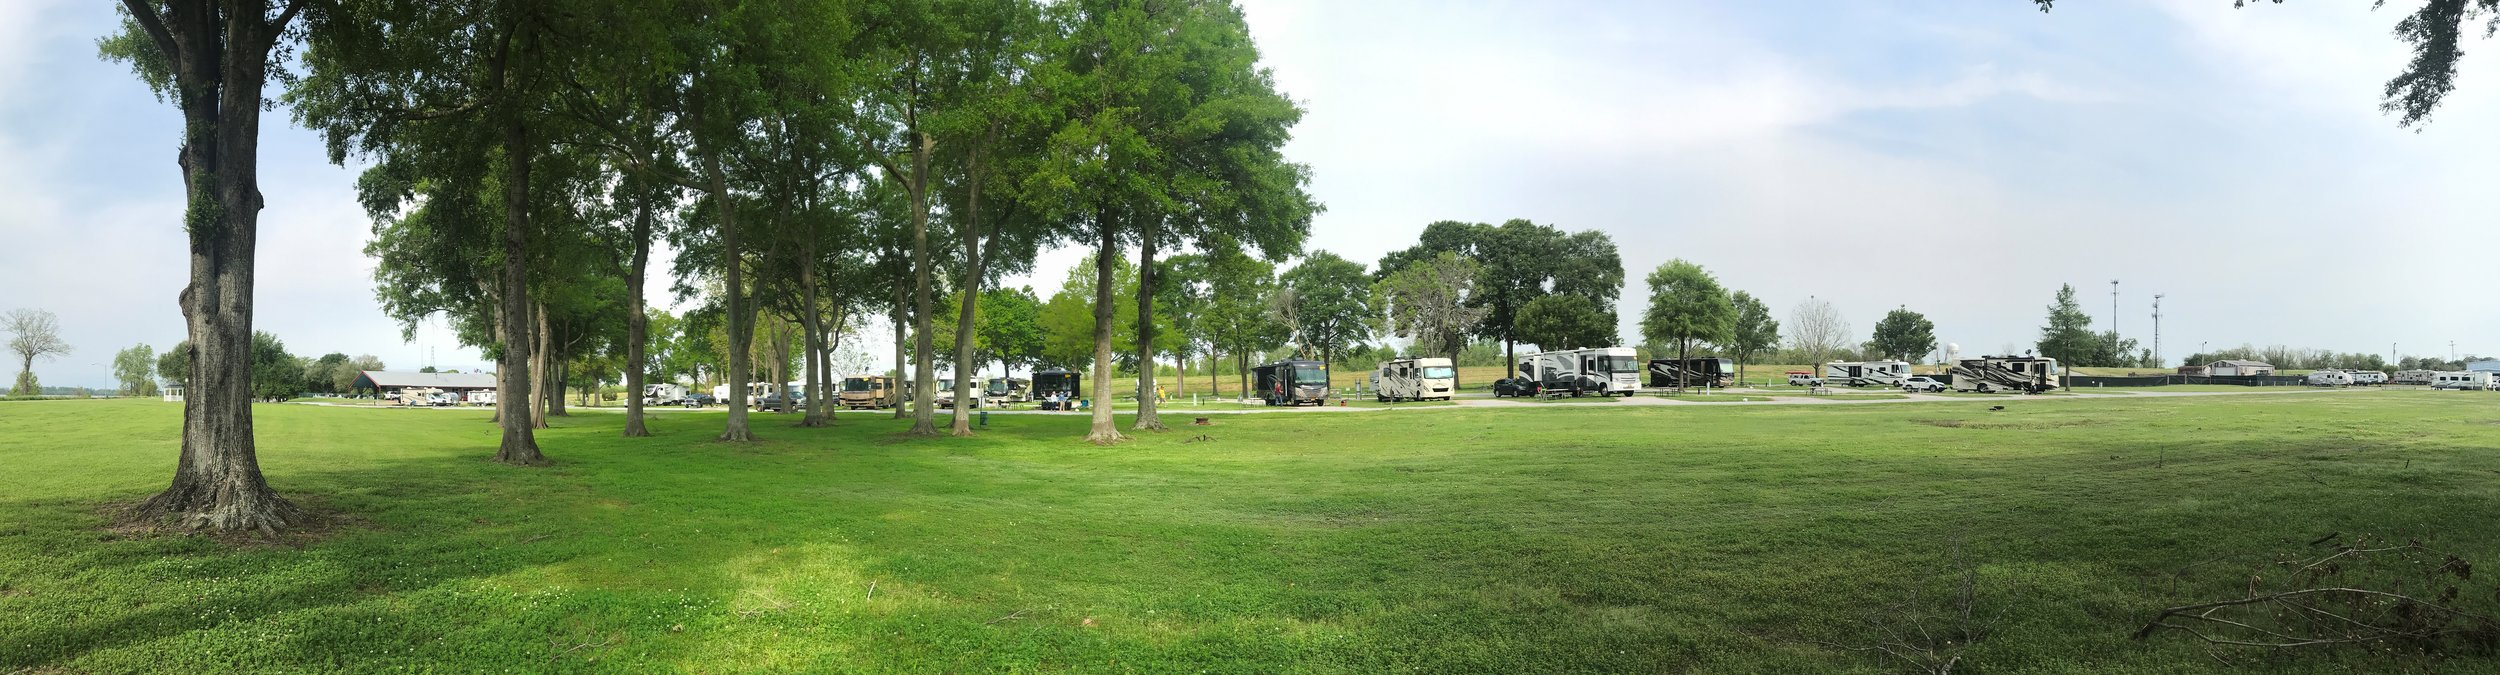 We give Riverview RV Park two thumbs up